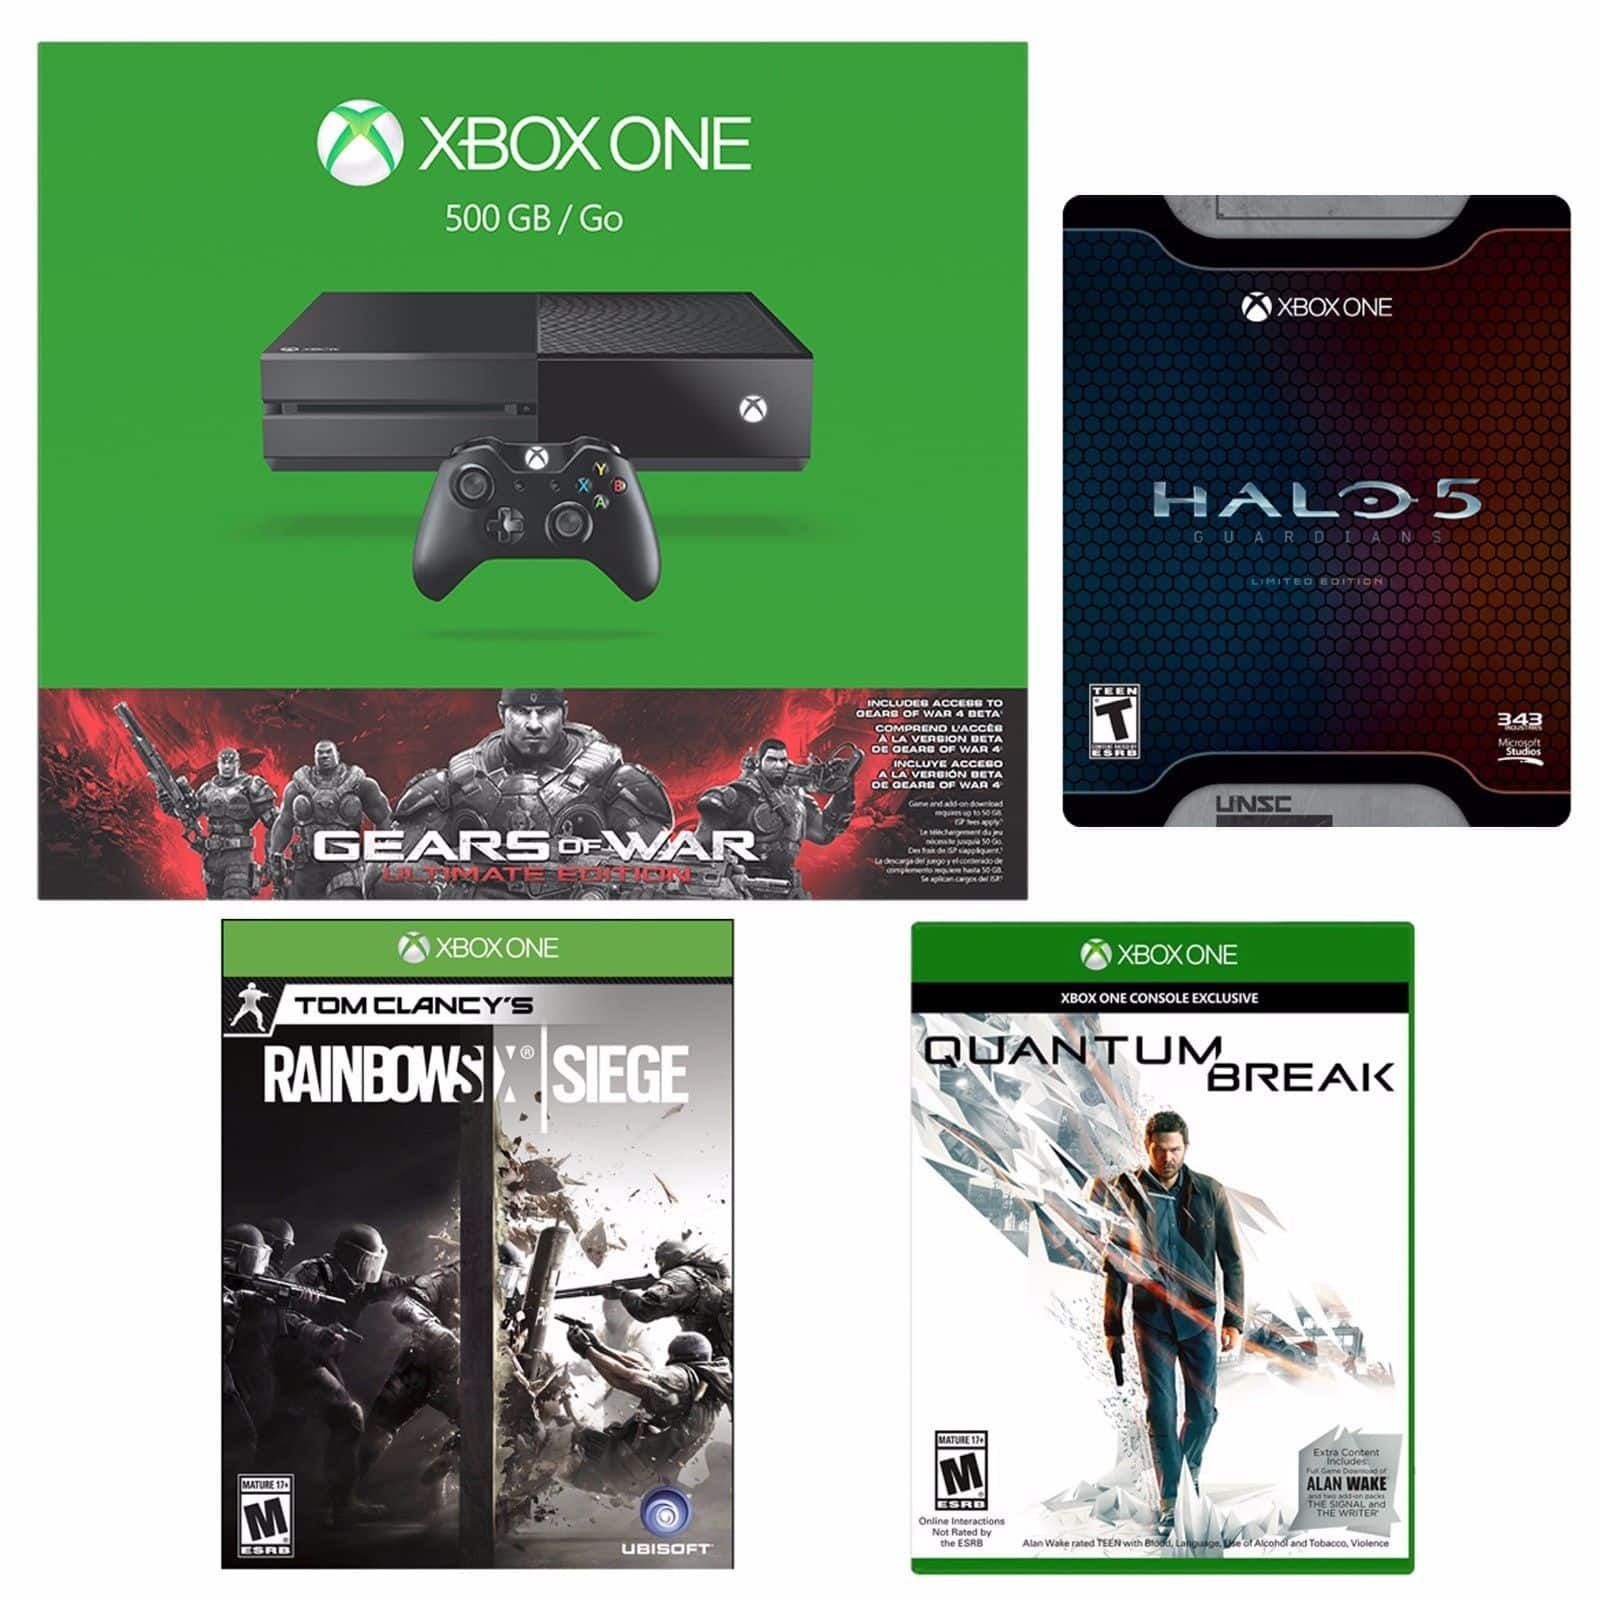 Xbox One 500GB Gears of War Console+Quantum Break+Halo Limited+Rainbow Six Siege $350 + Free Shipping! (eBay Daily Deal)